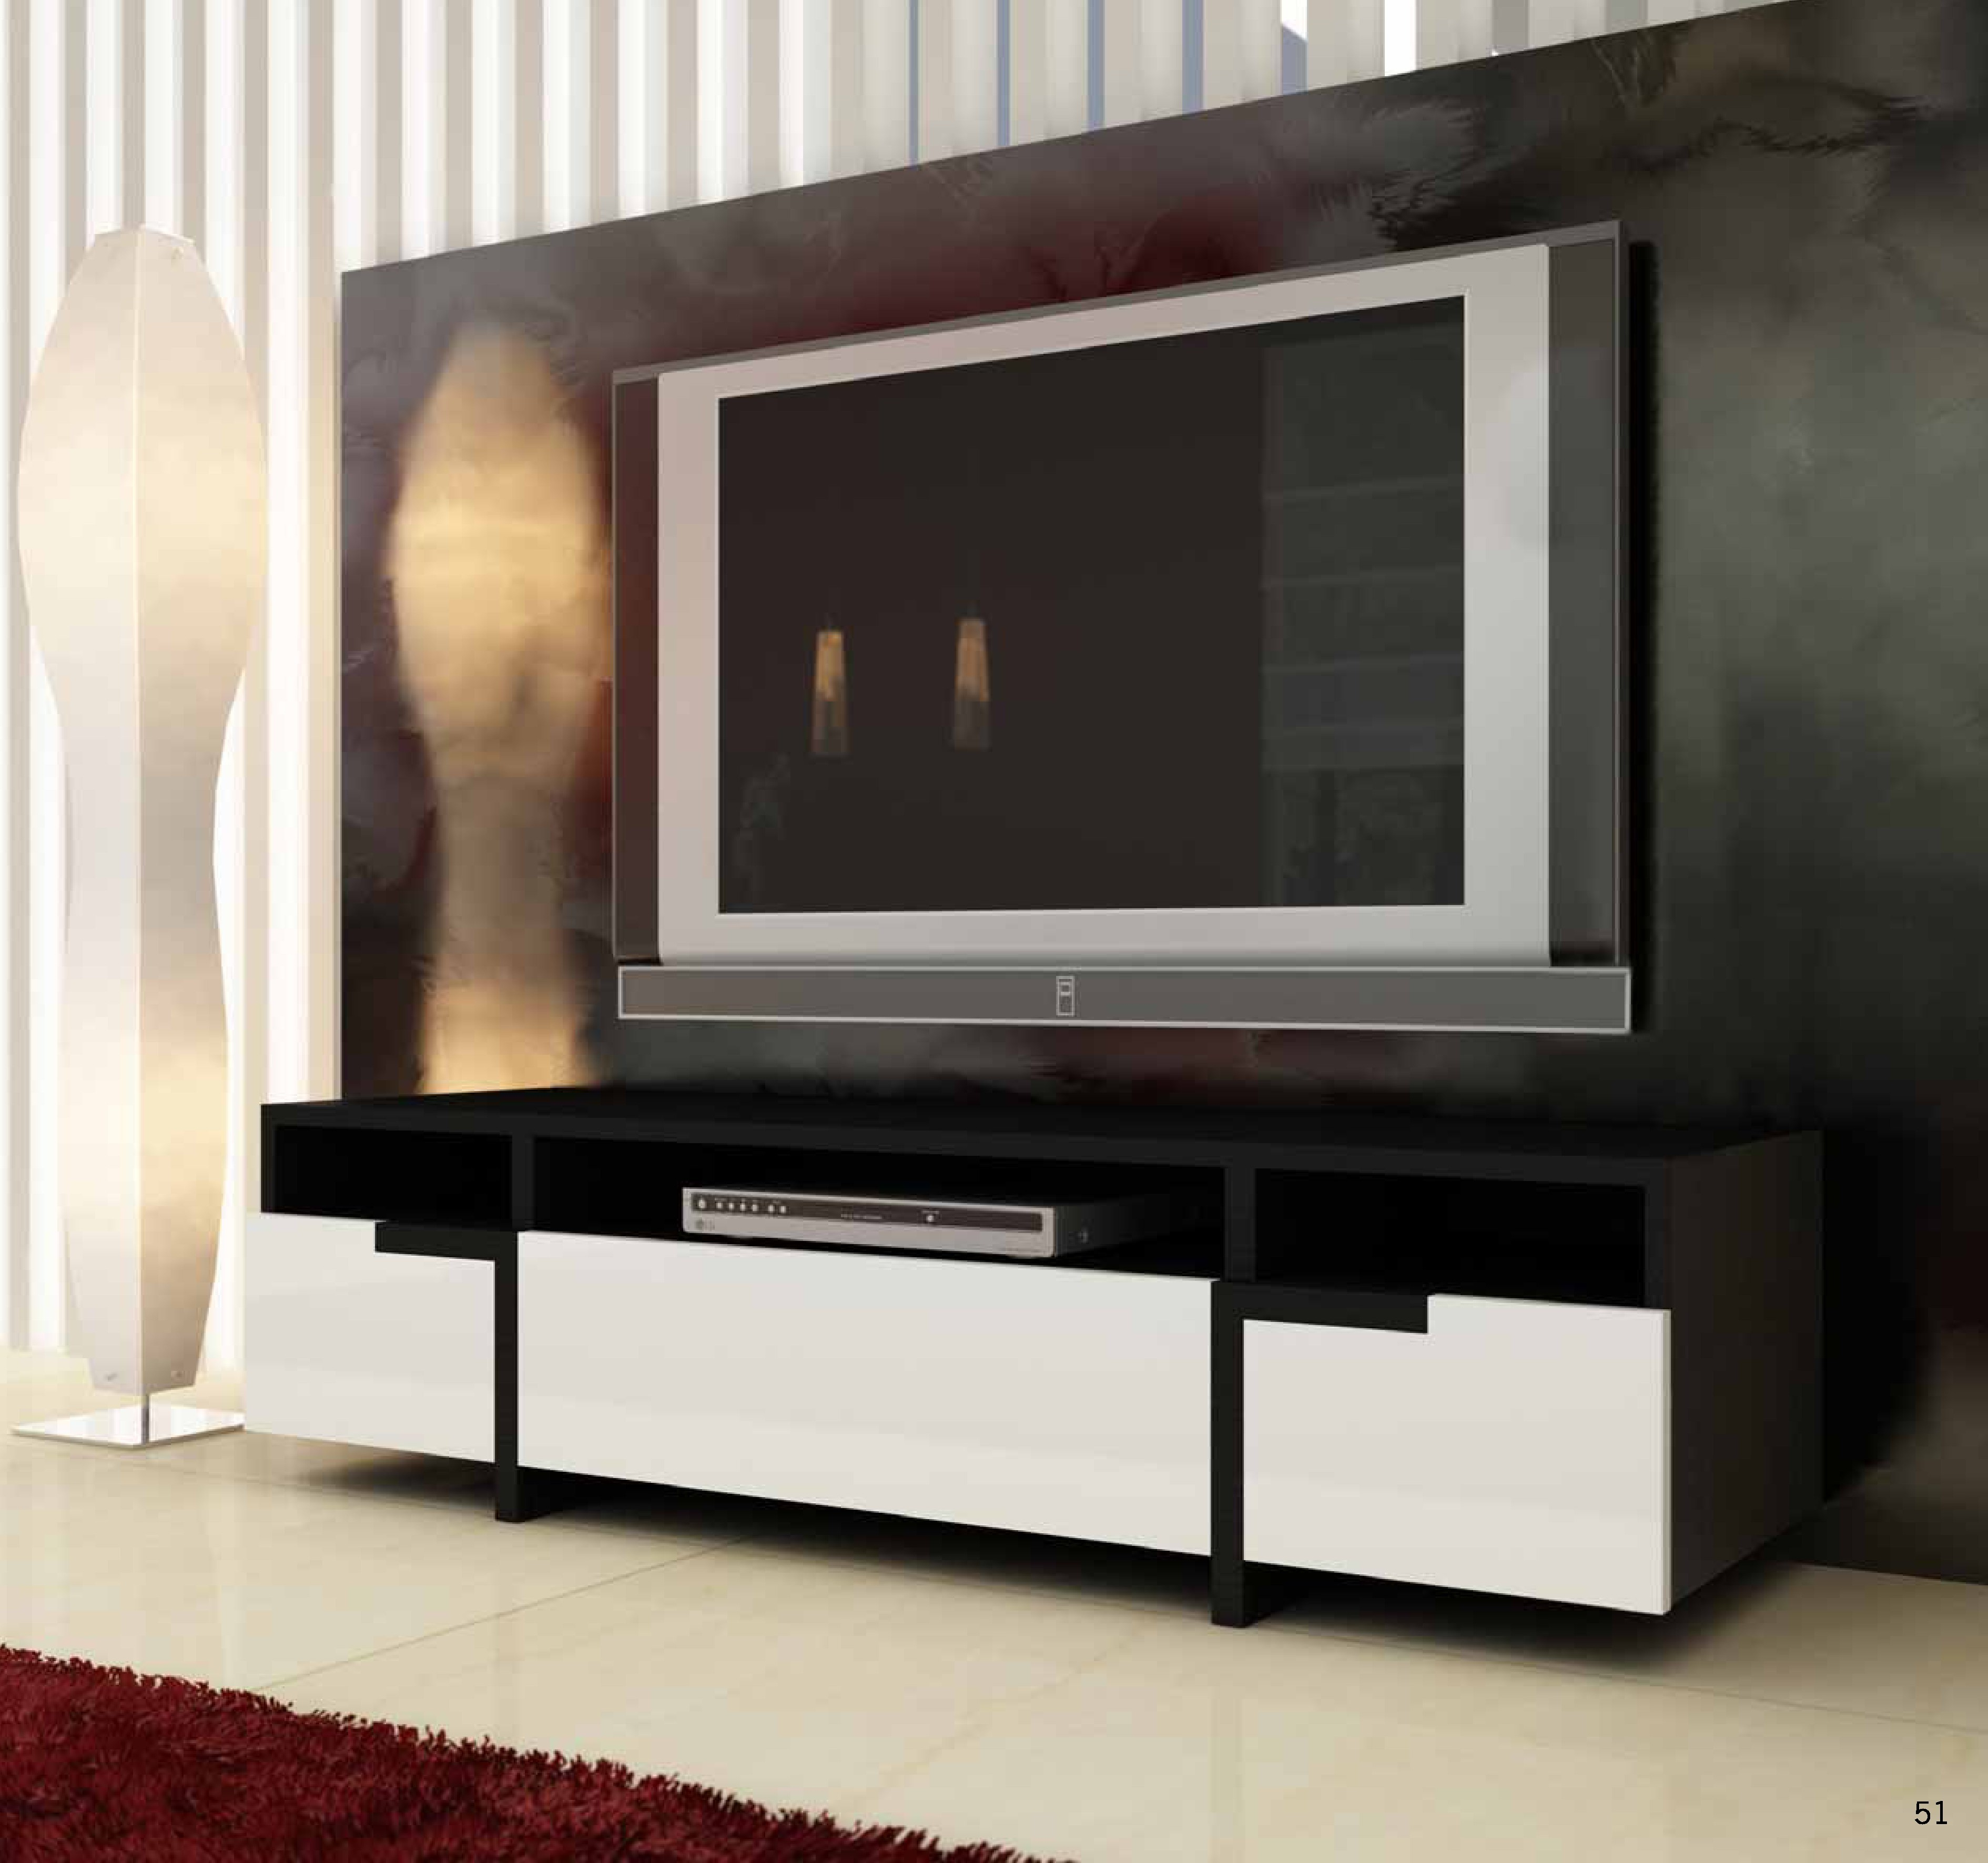 lua luxury tv unit tv stands 1868 sena home furniture rh sena homefurniture co uk tv unitymedia programm tv units panorama